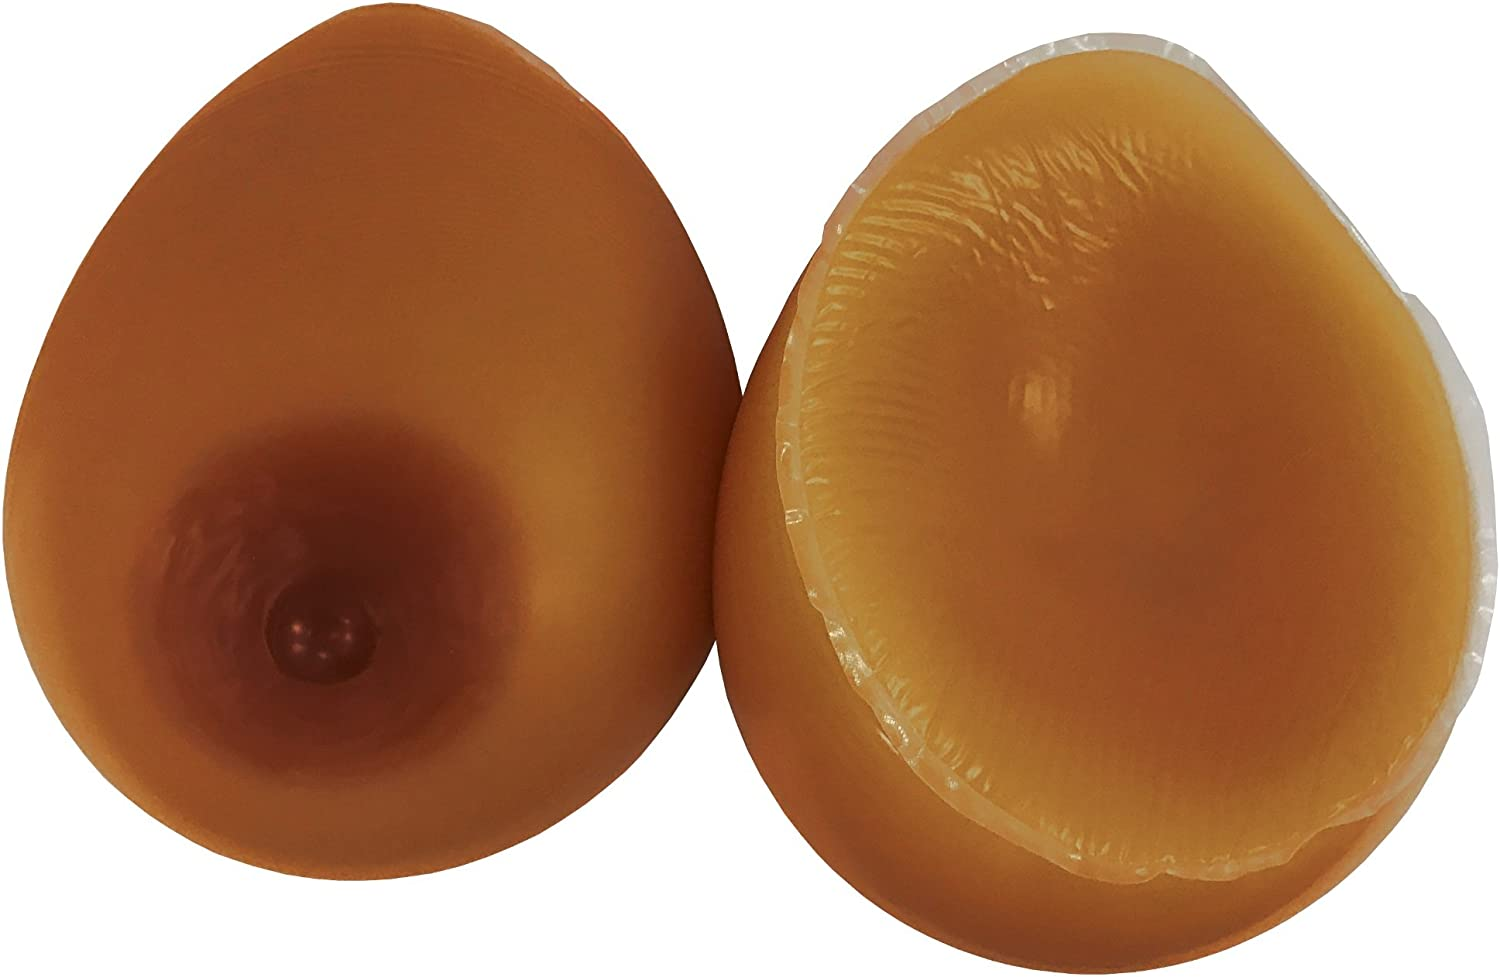 ENVY BODY SHOP Rounder Fuller Concave Back Tear Drop Silicone Breast Forms